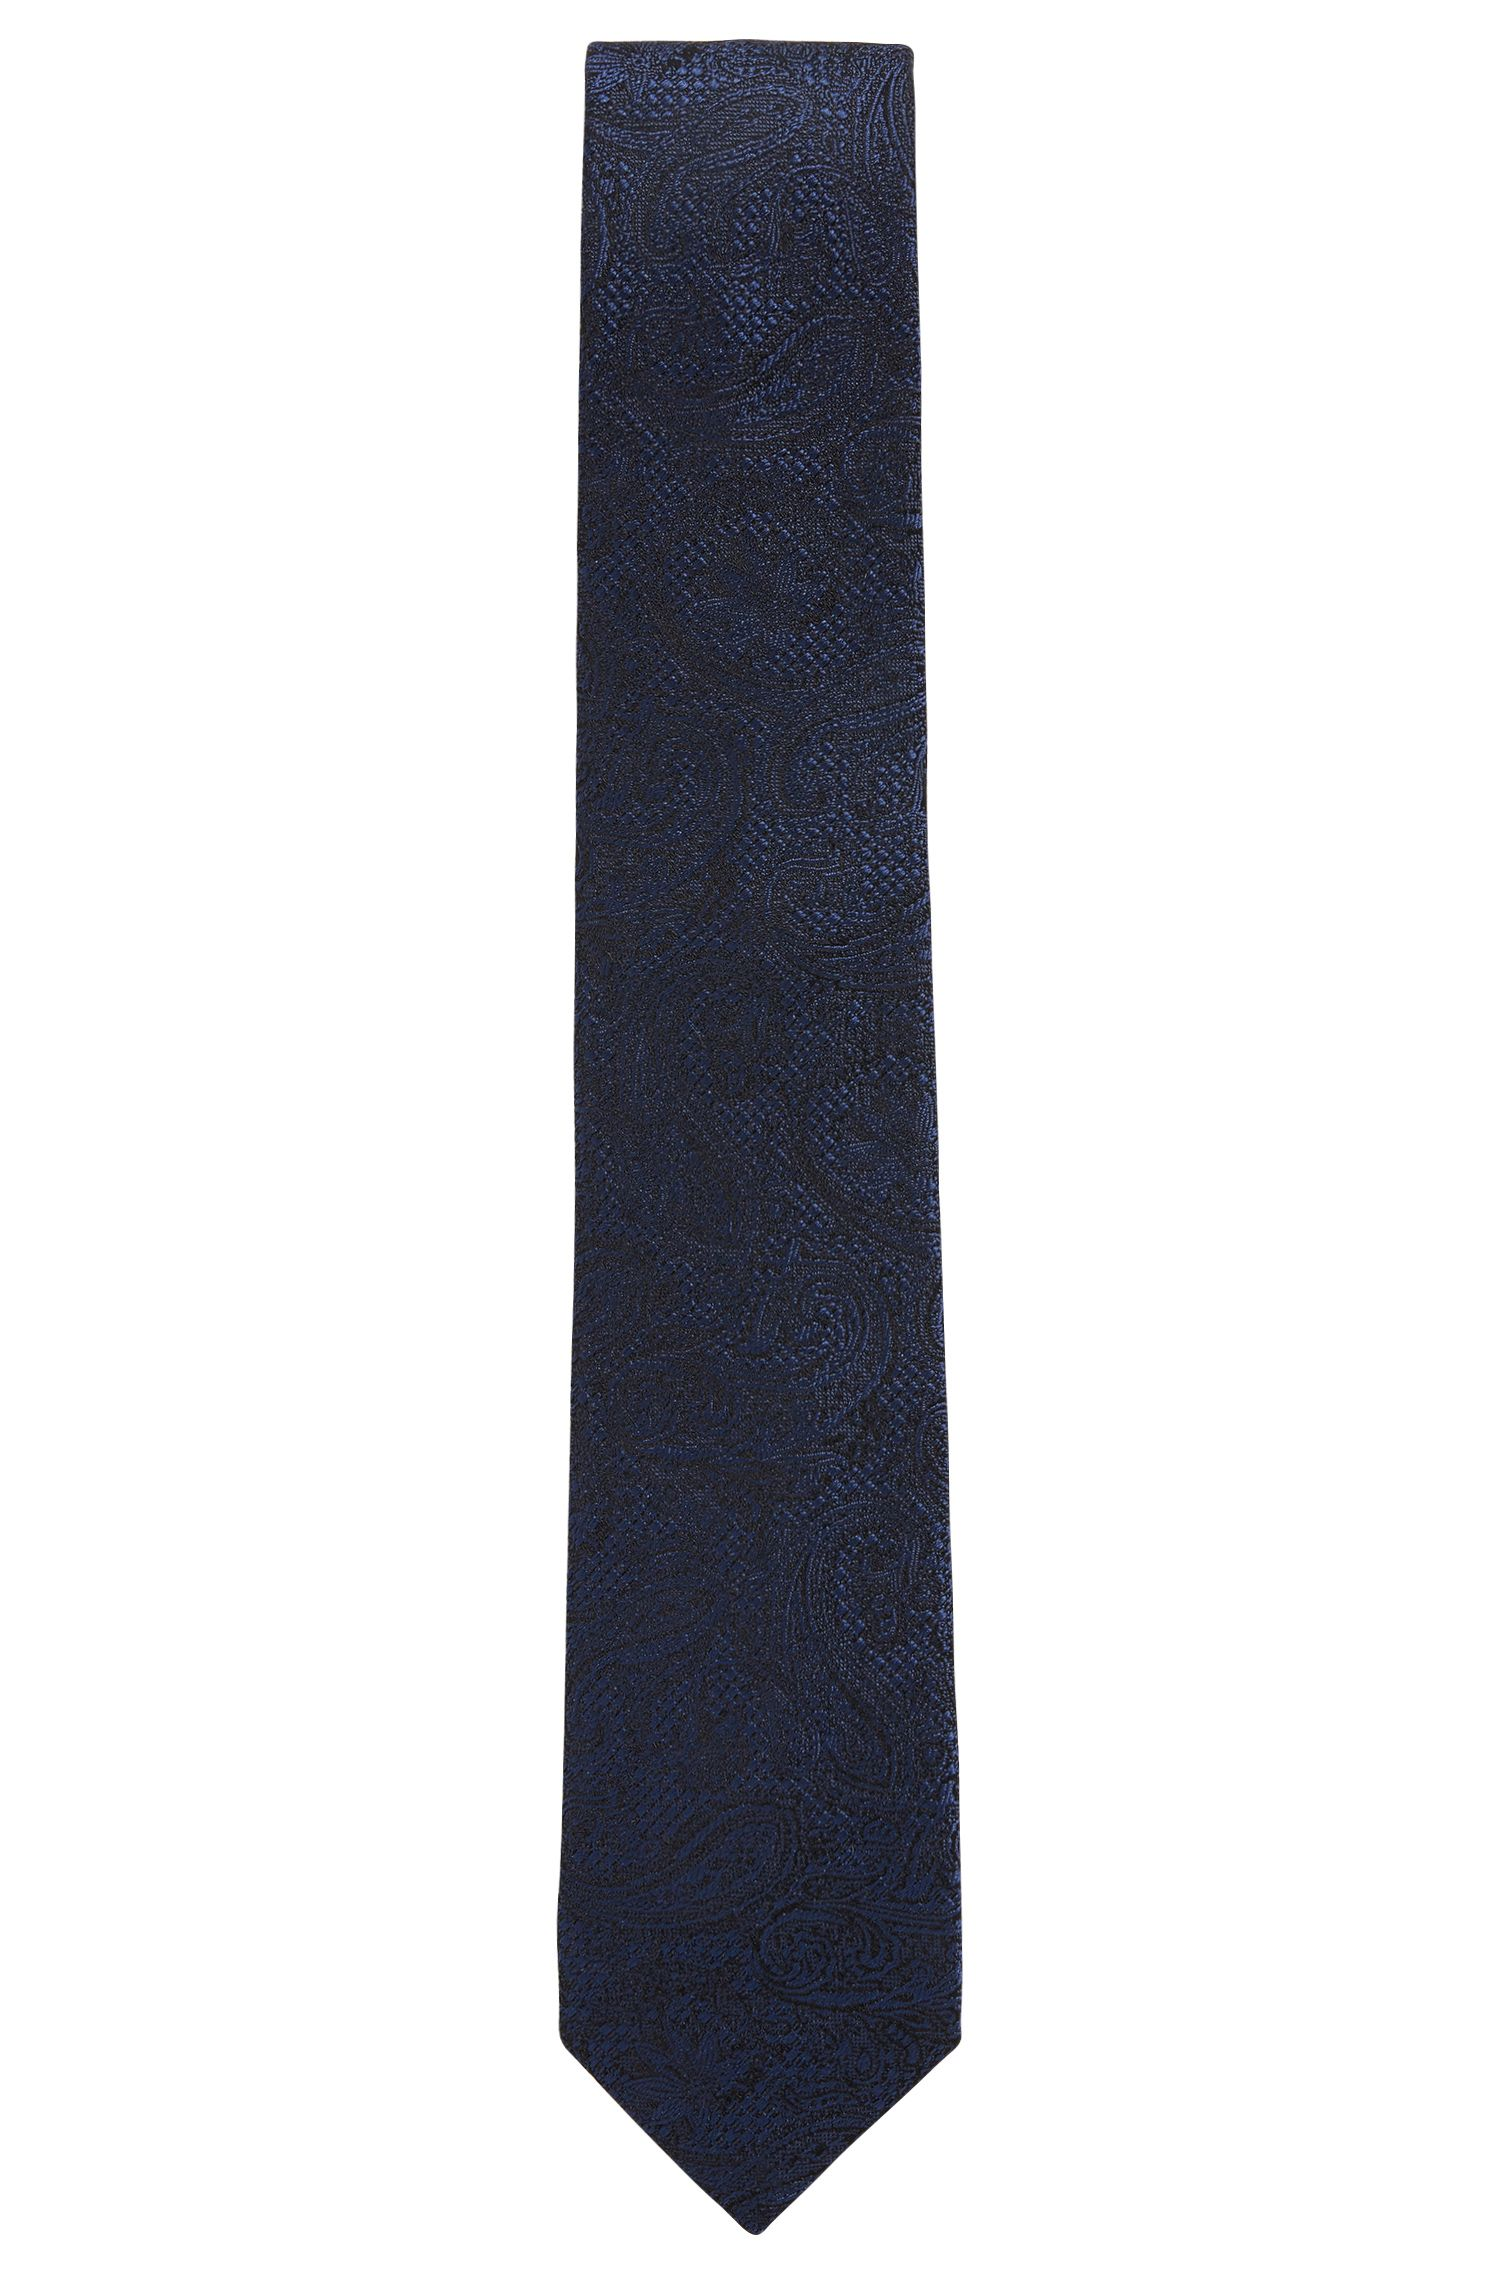 Italian-made tie in patterned silk